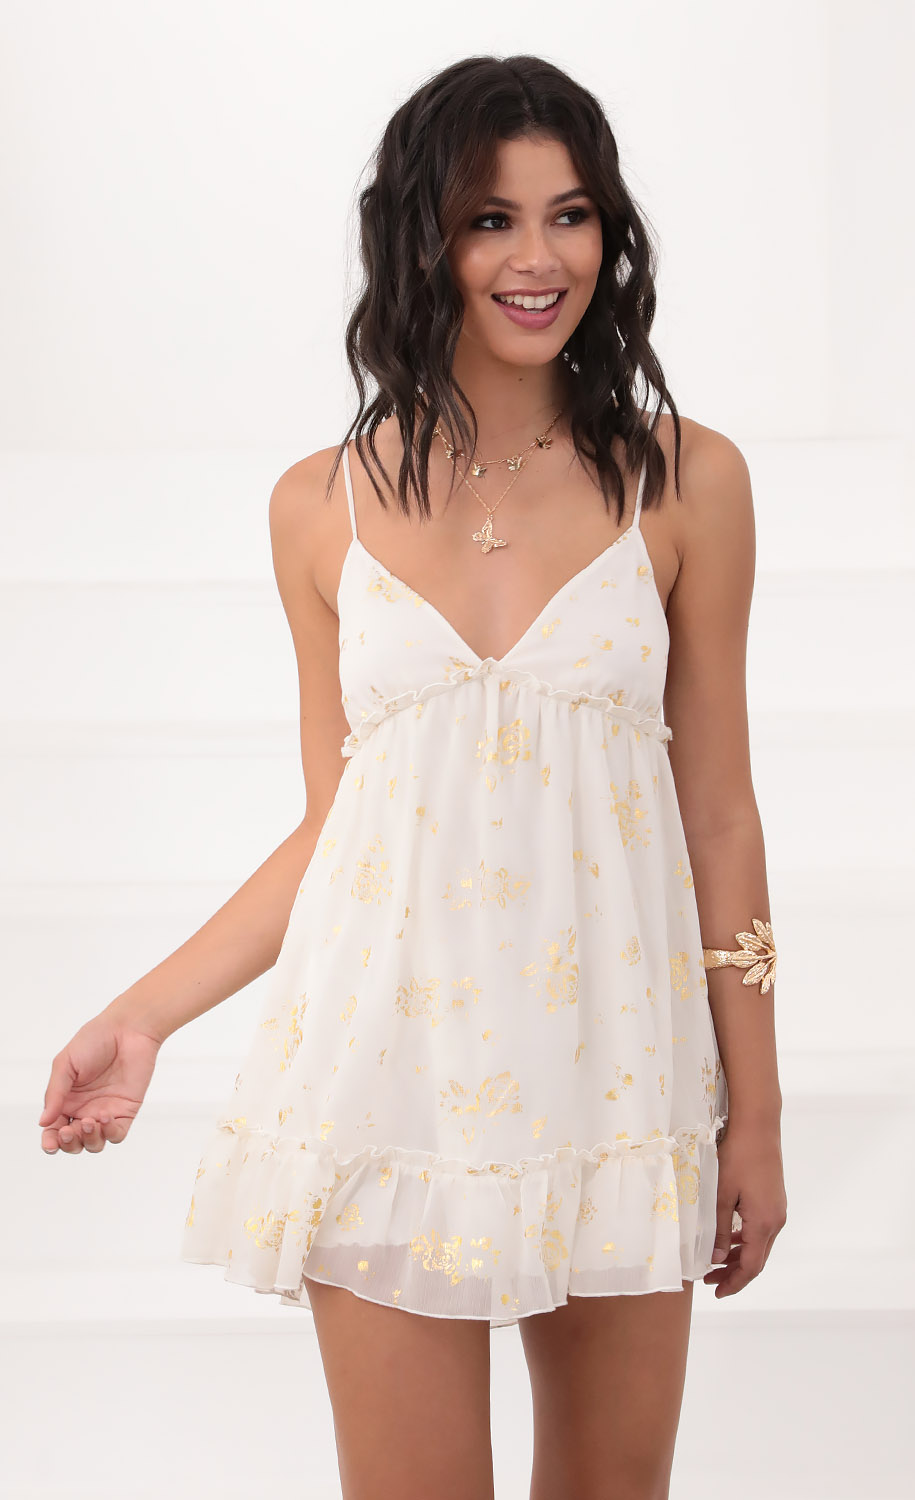 Rosa Day Dress in Ivory and Gold Detailing